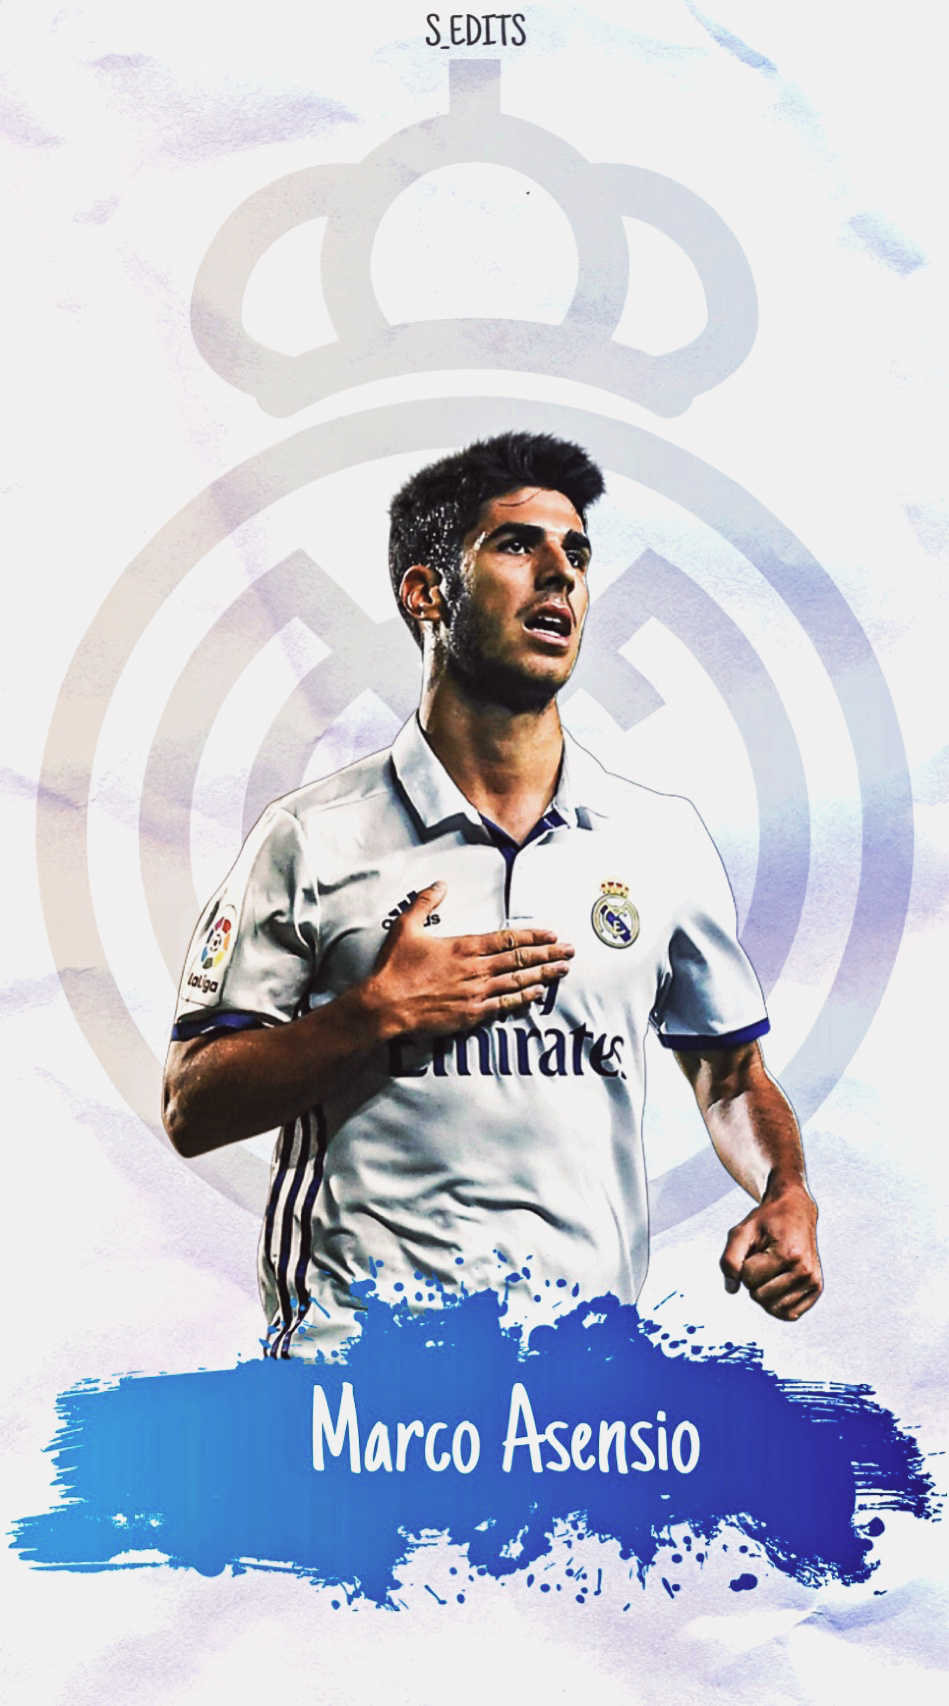 949x1706 - Marco Asensio Wallpapers 1